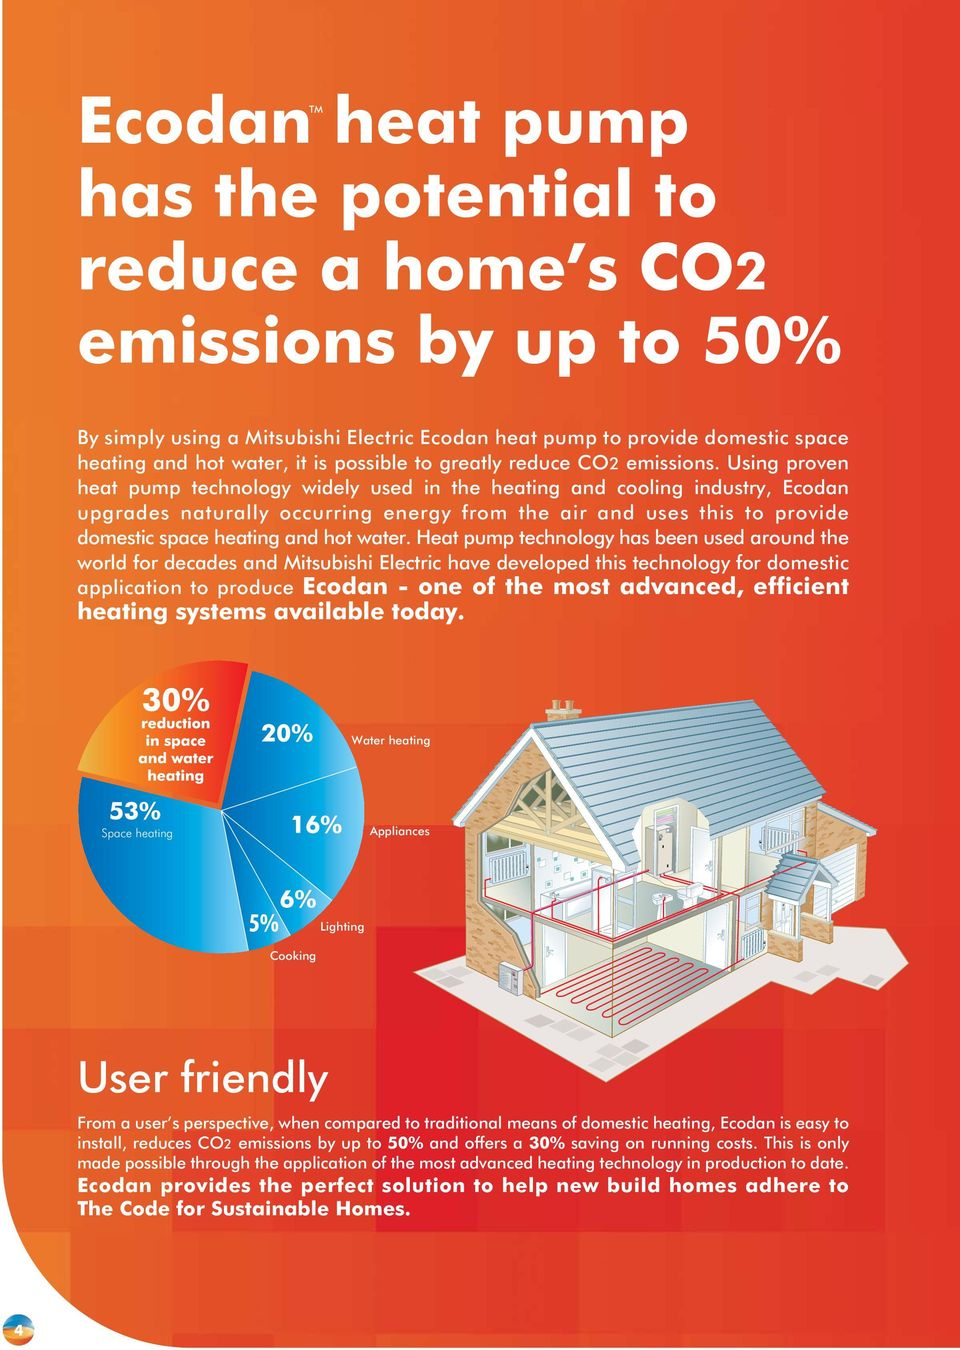 Using proven heat pump technology widely used in the heating and cooling industry, Ecodan upgrades naturally occurring energy from the air and uses this to provide domestic space heating and hot